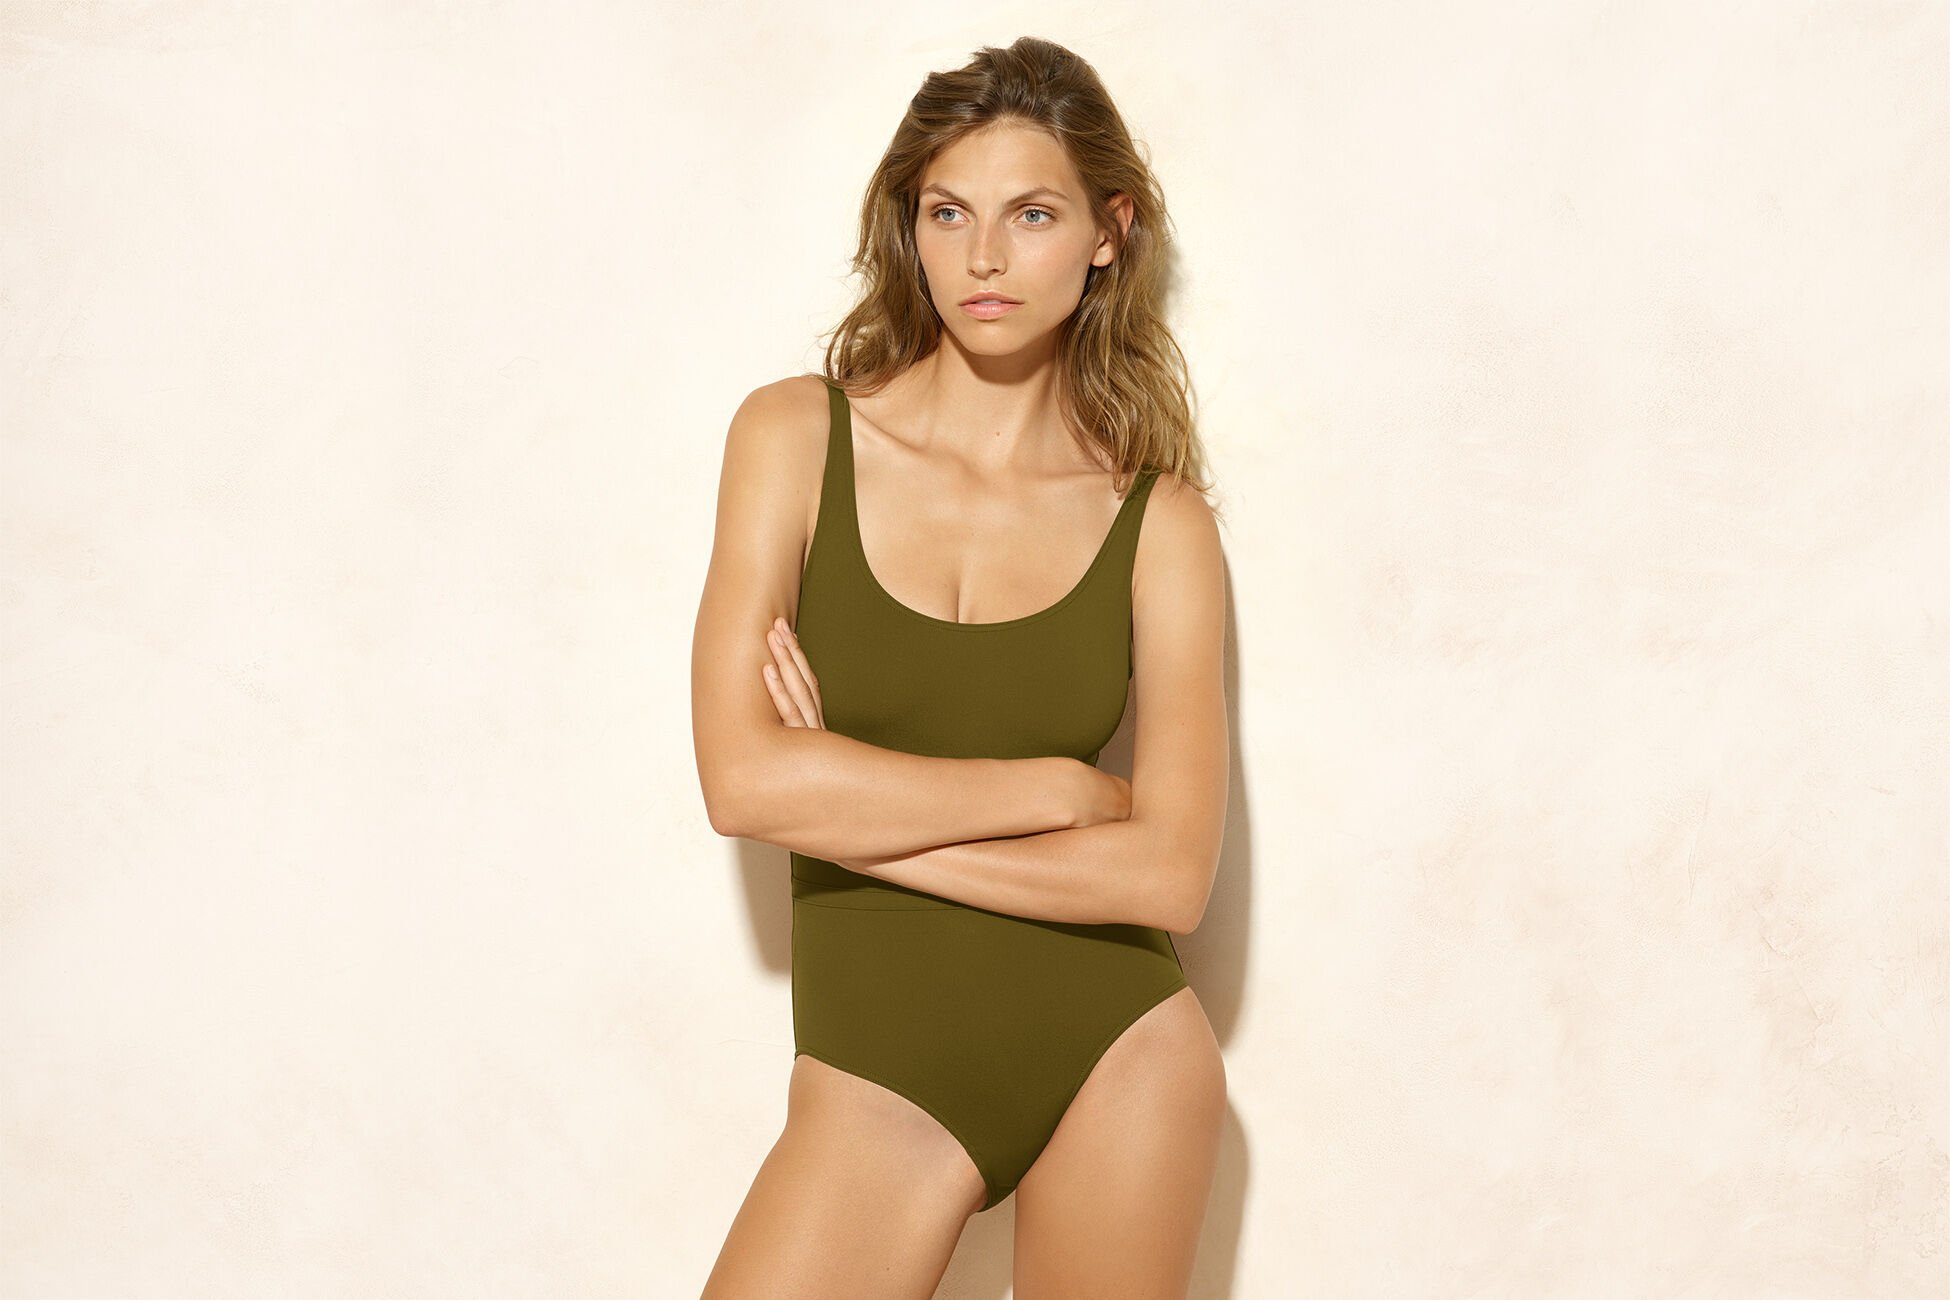 Asia Tank one-piece standard view �